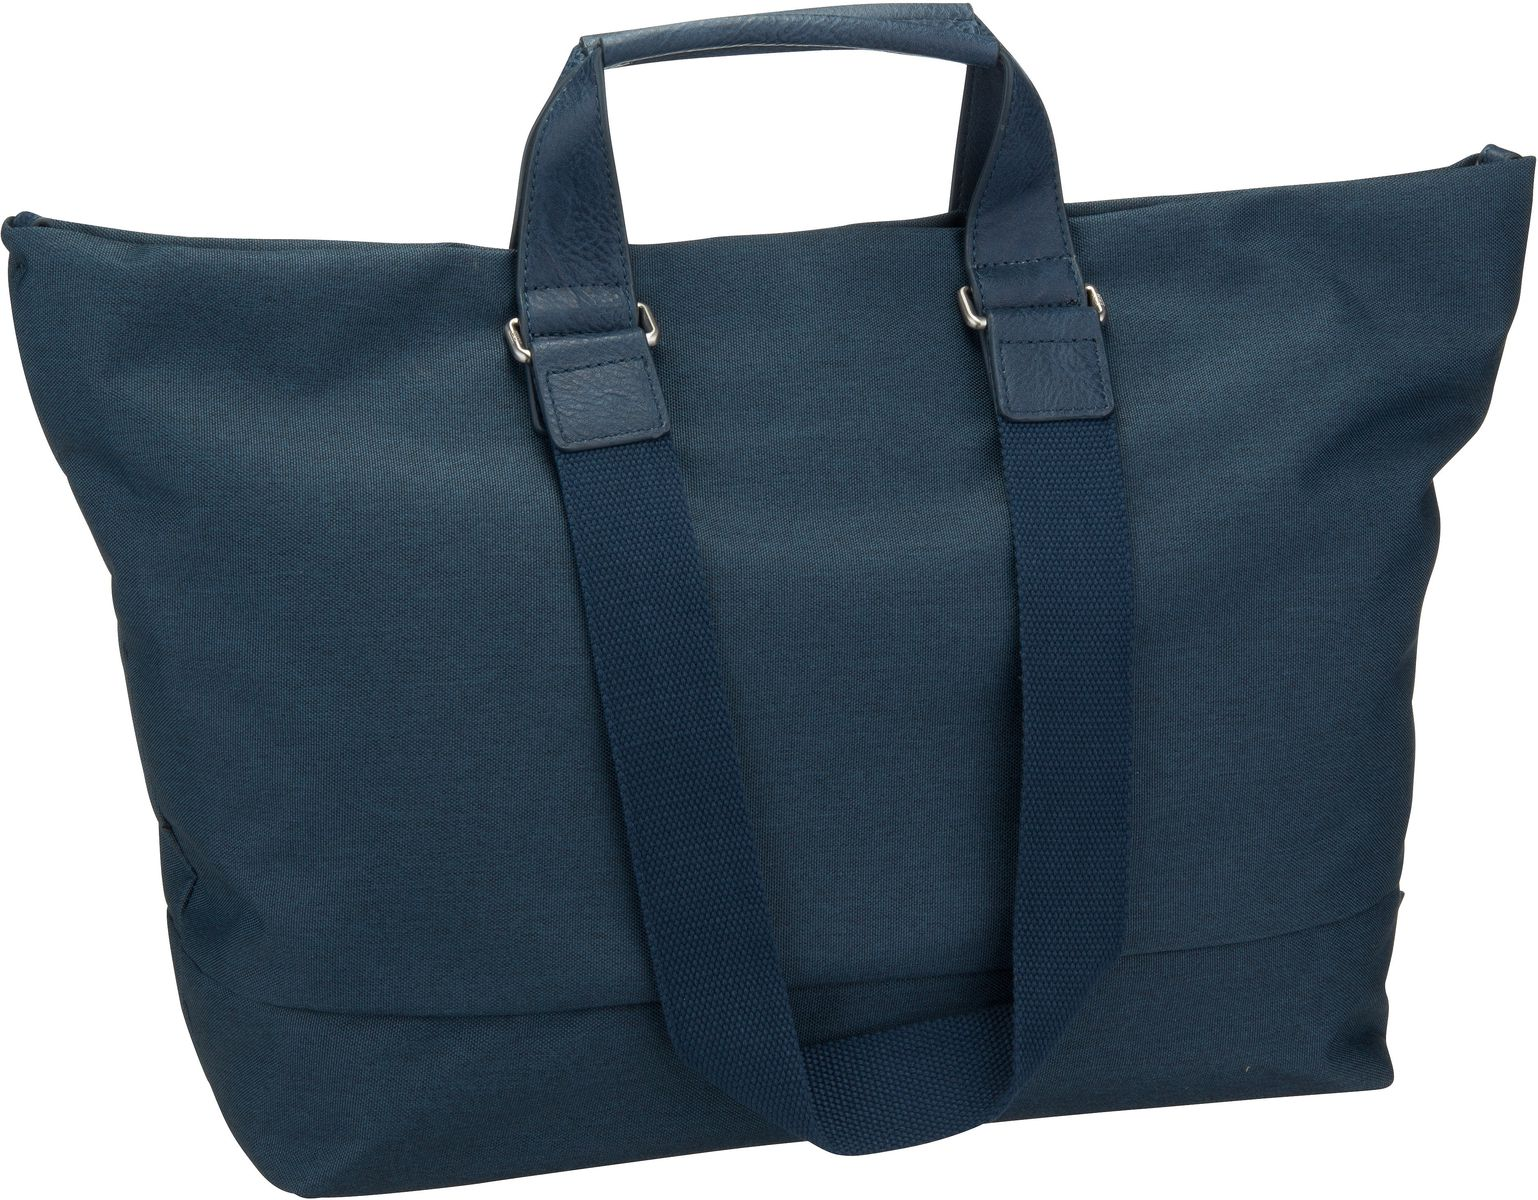 Handtasche Bergen 1109 Shopper Navy